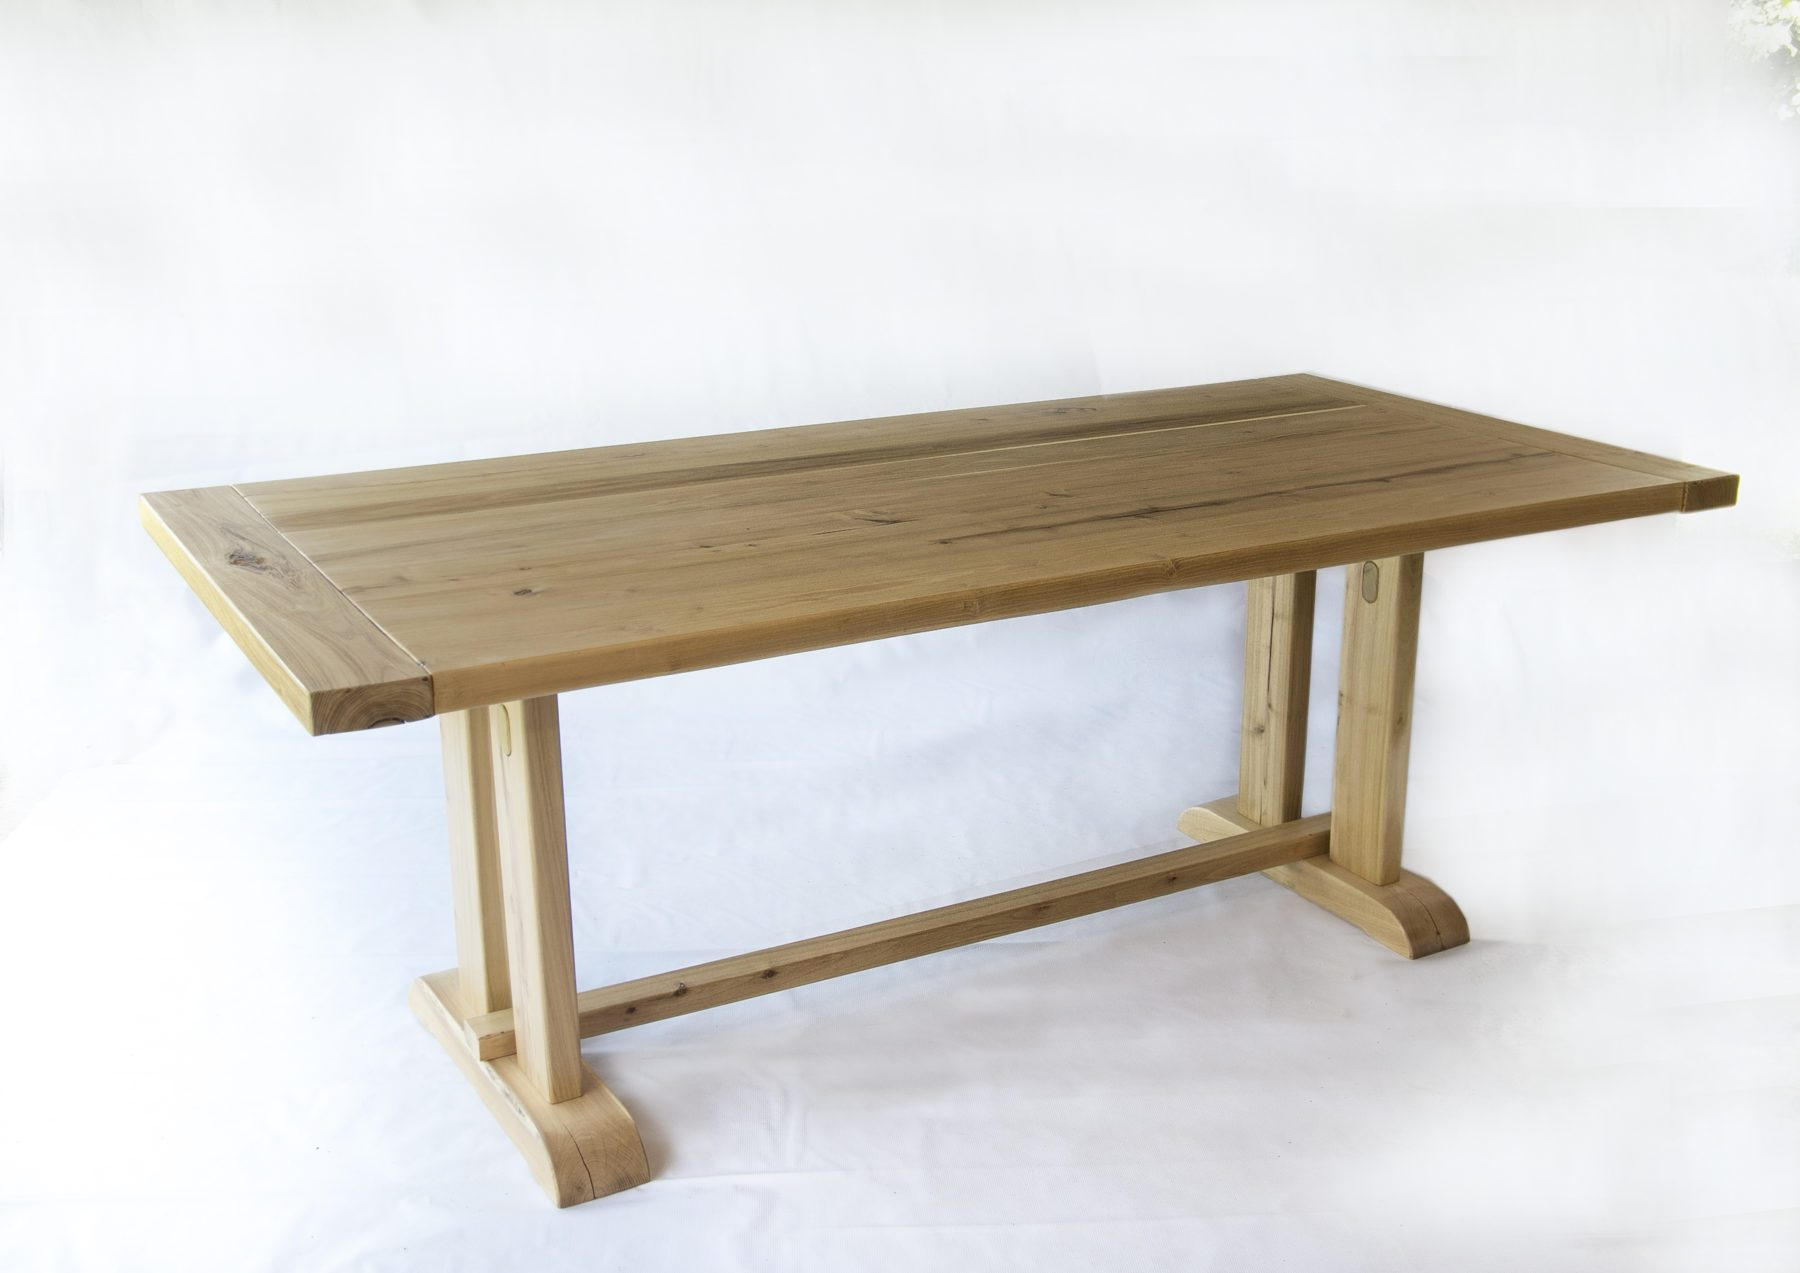 Handcrafted Solid Acacia Reclaimed Wood Handmade Trestle Dining Table